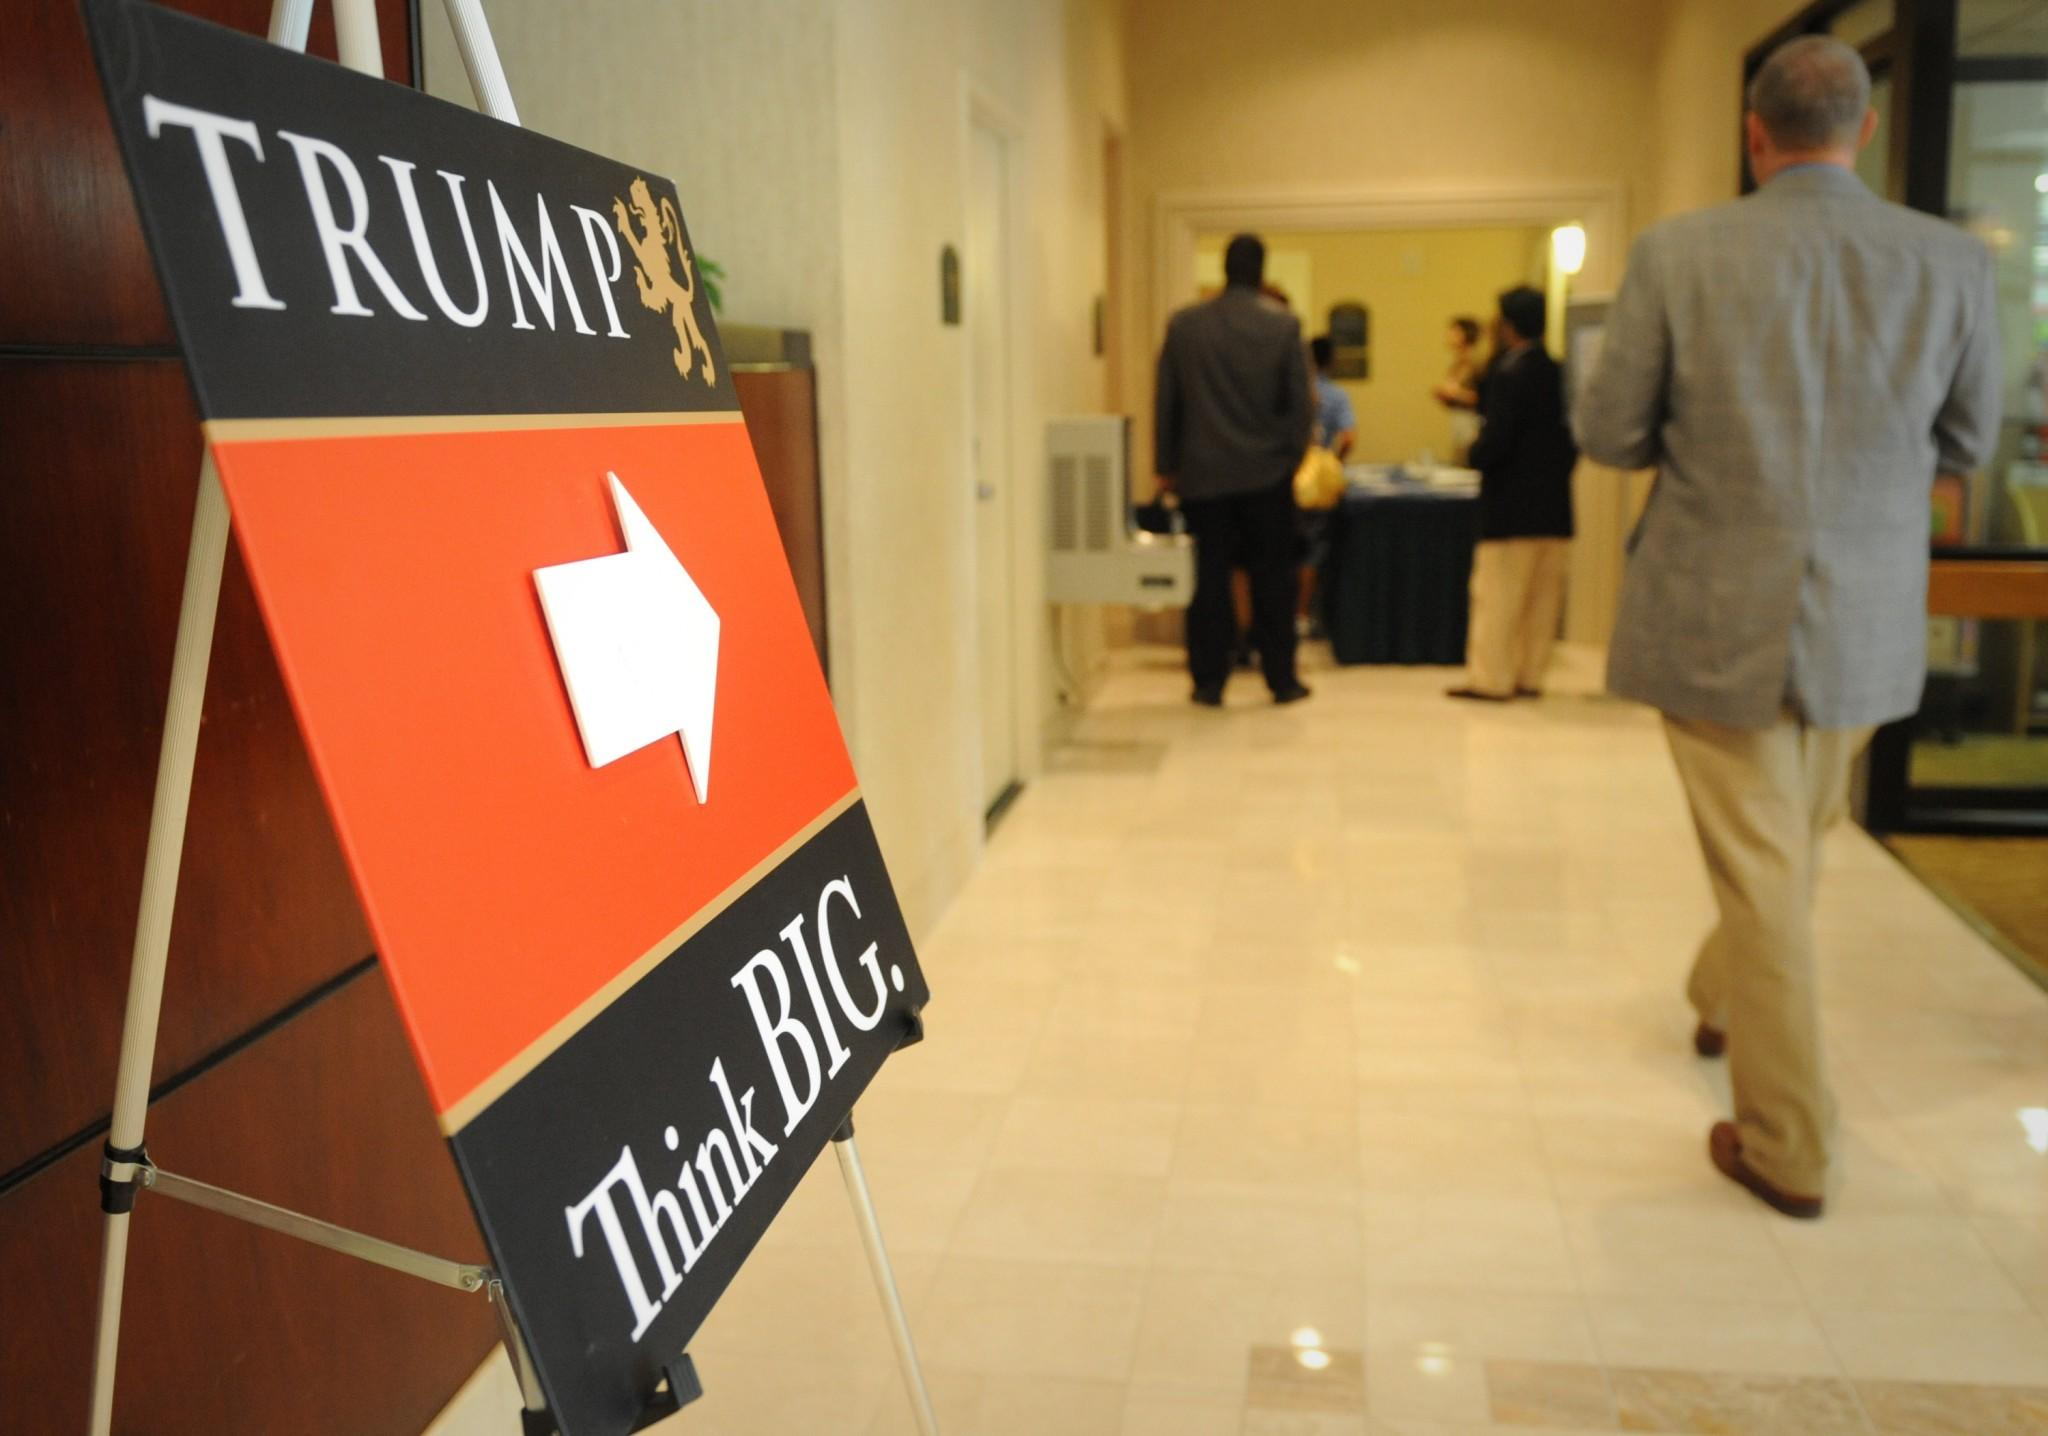 Students enter a Holiday Inn hotel to take the free intro class taught by the professors of Trump University in 2009. (Photo : Sarah L. Voisin/The Washington Post via Getty Images)